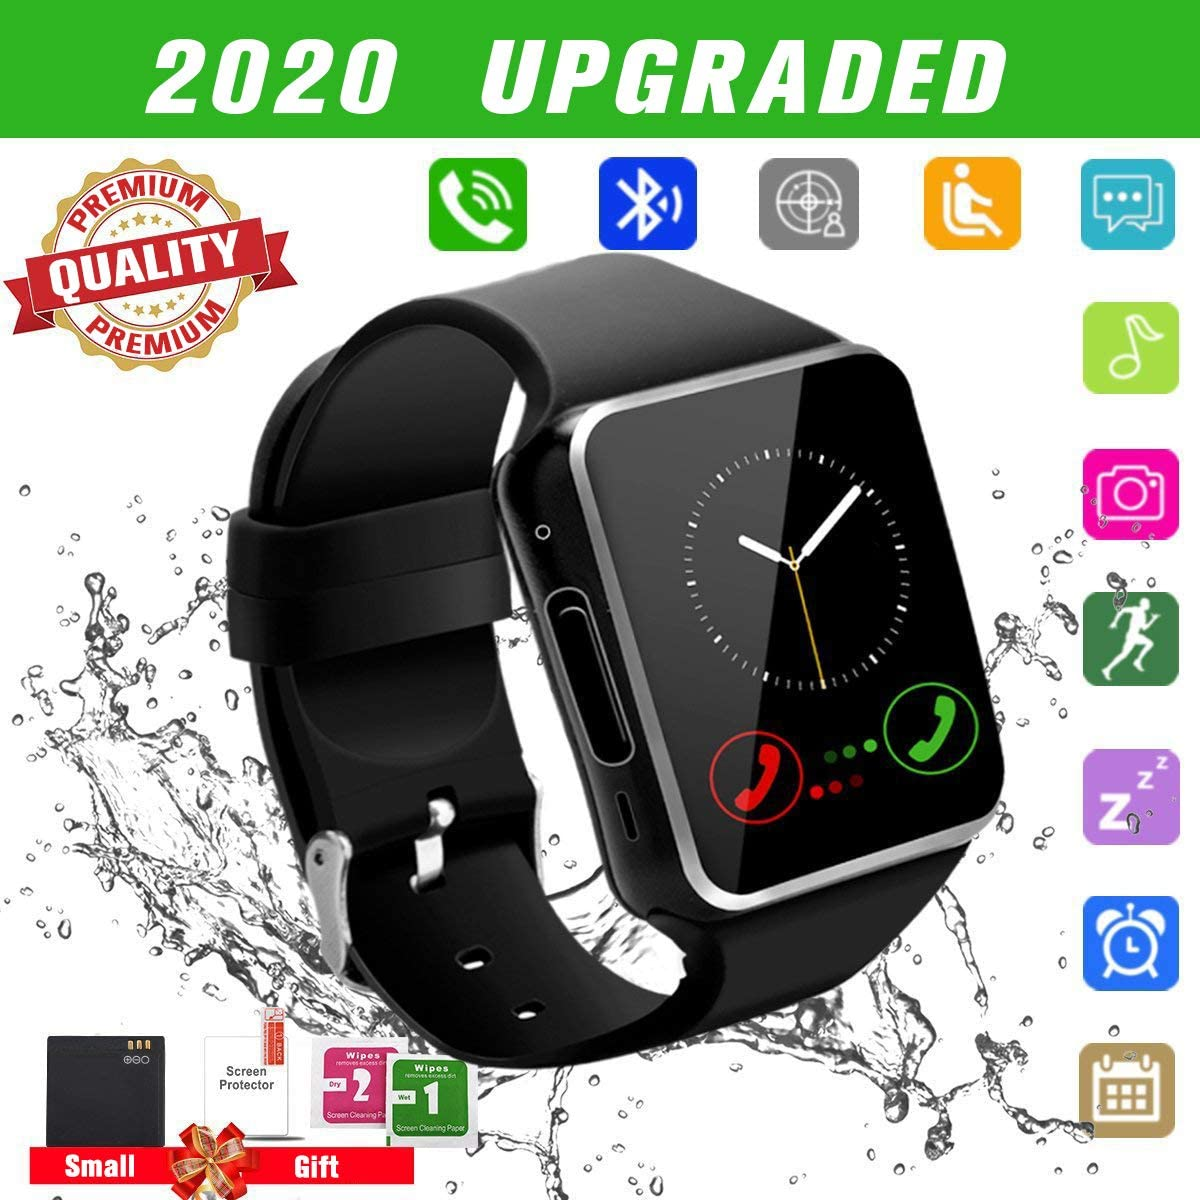 Smart Watch For Android Phones Smartwatch For Men Women Smart Watches With Camera Bluetooth Watch With Sim Card Slot Cell Phone Watch Smartwatch For Android Samsung Phone Ios Xs X8 10 11